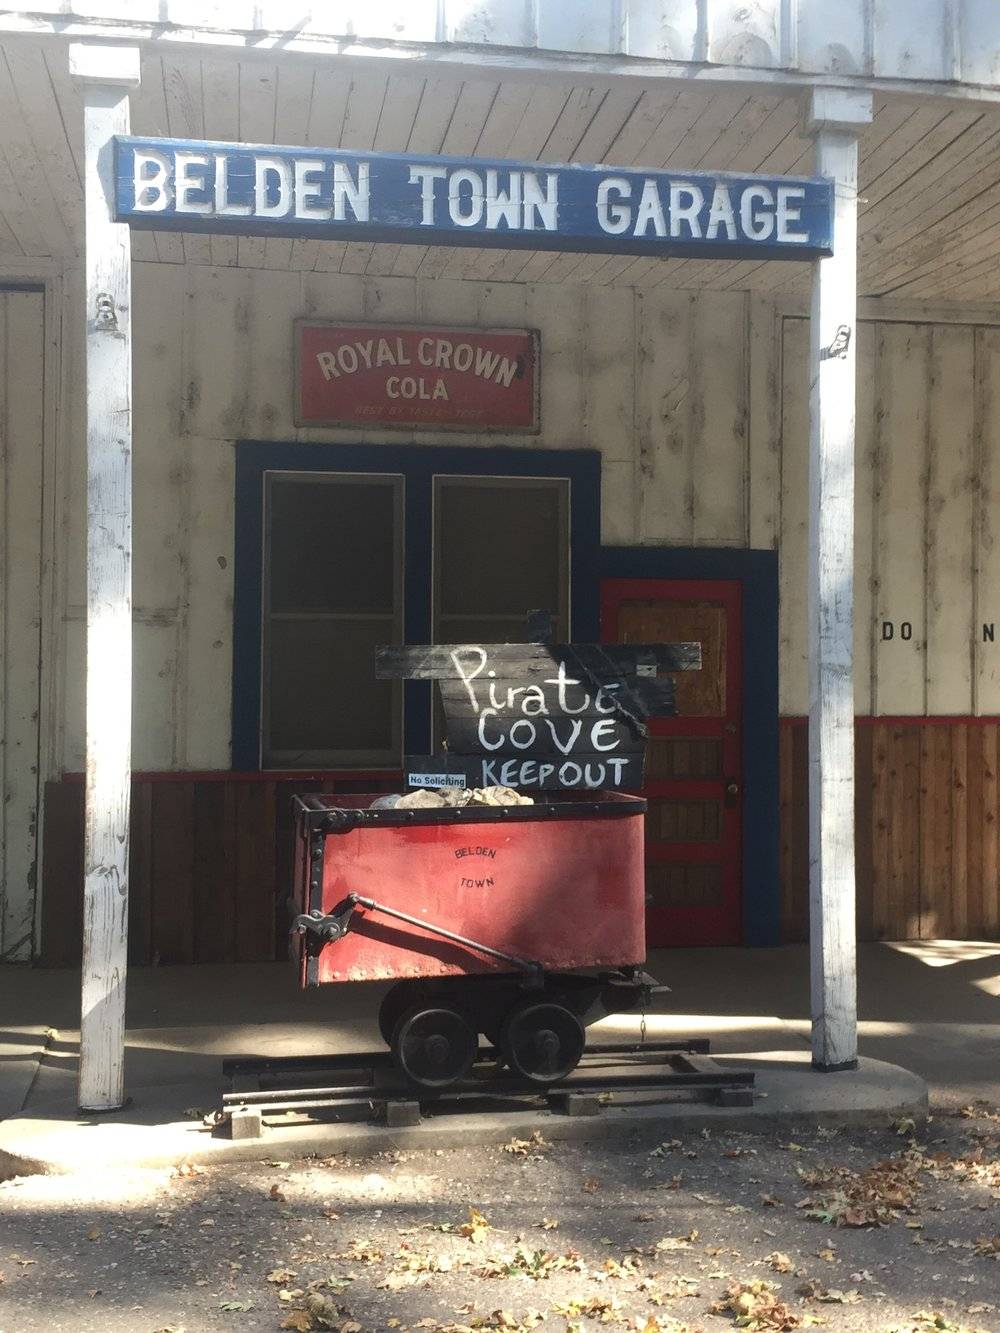 Belden Town, in a nutshell